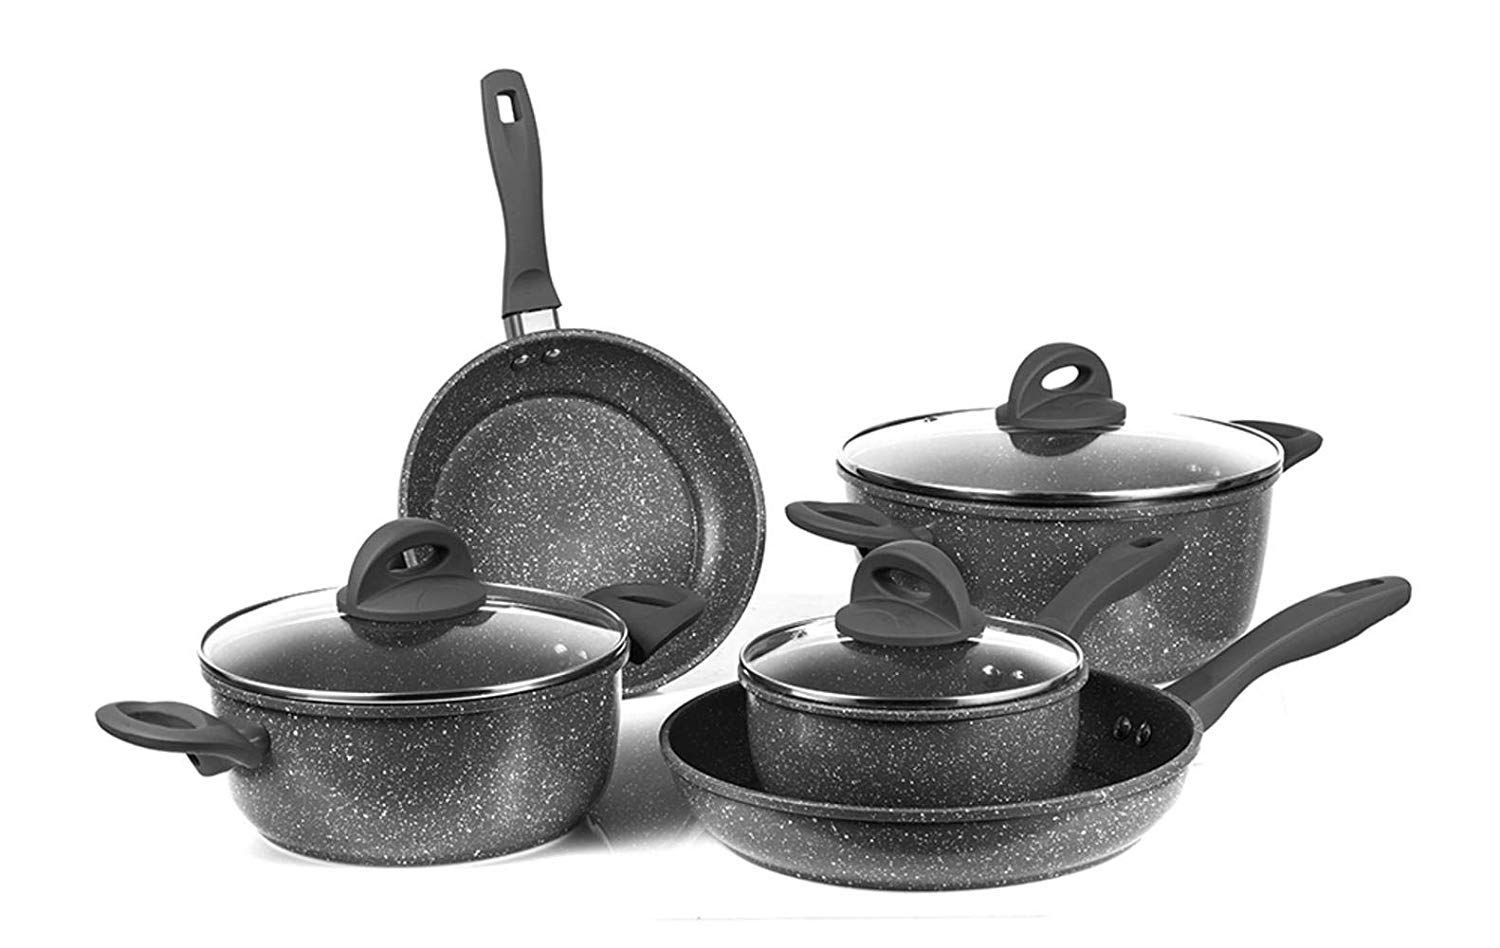 Nonstick Cookware Set Pots And Frying Pan Set With Glass Lids Oven